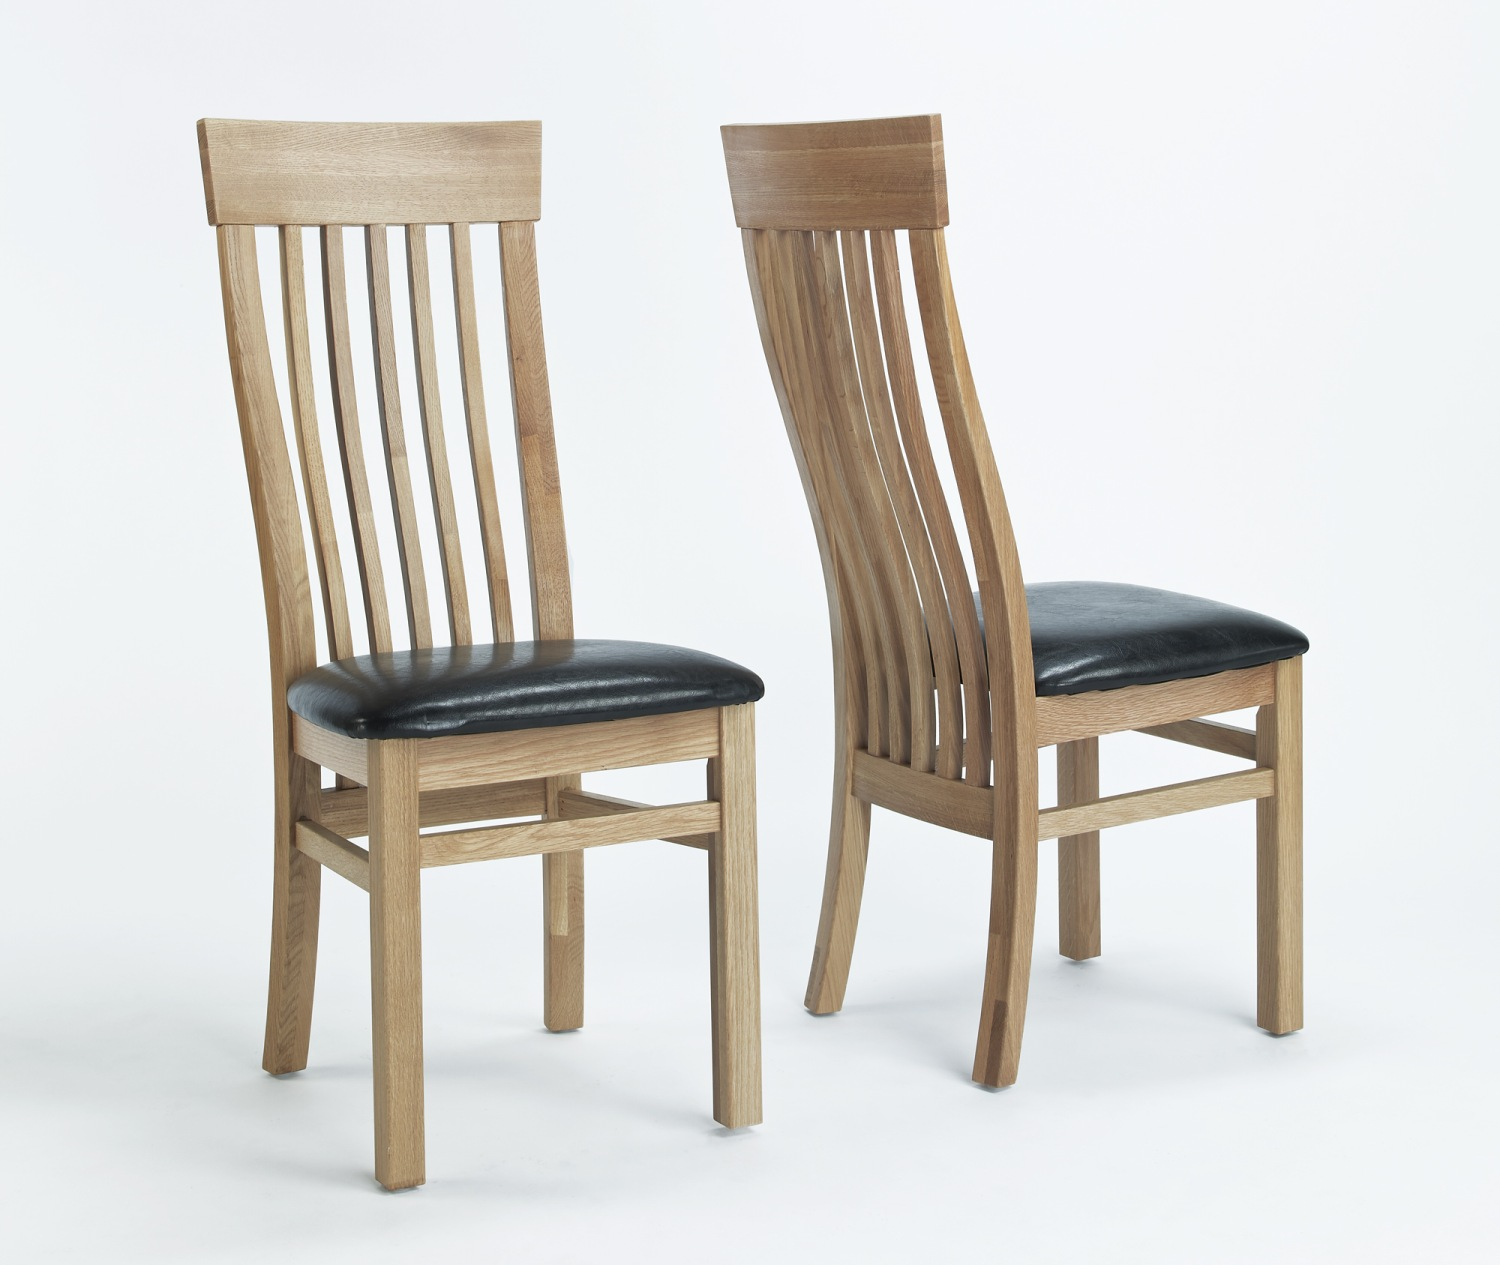 Unfinished Dining Room Chairs Compton Solid Oak Furniture Set Of Four Leather Seat